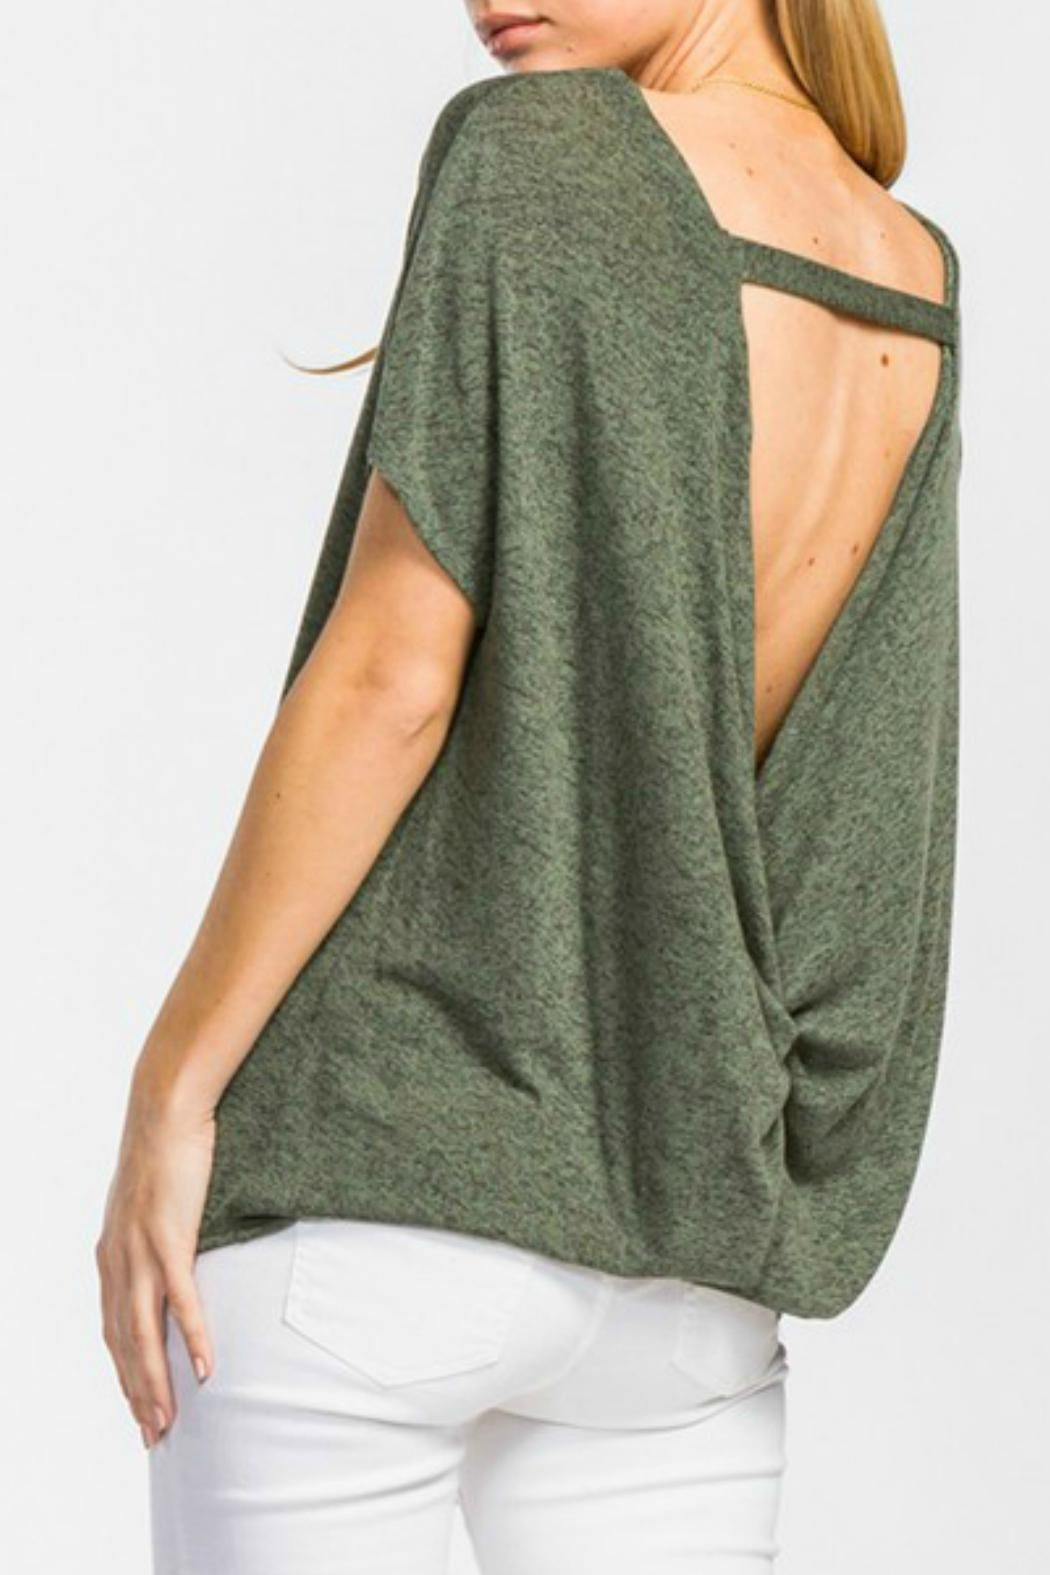 Cherish Olive Knit Top - Front Cropped Image